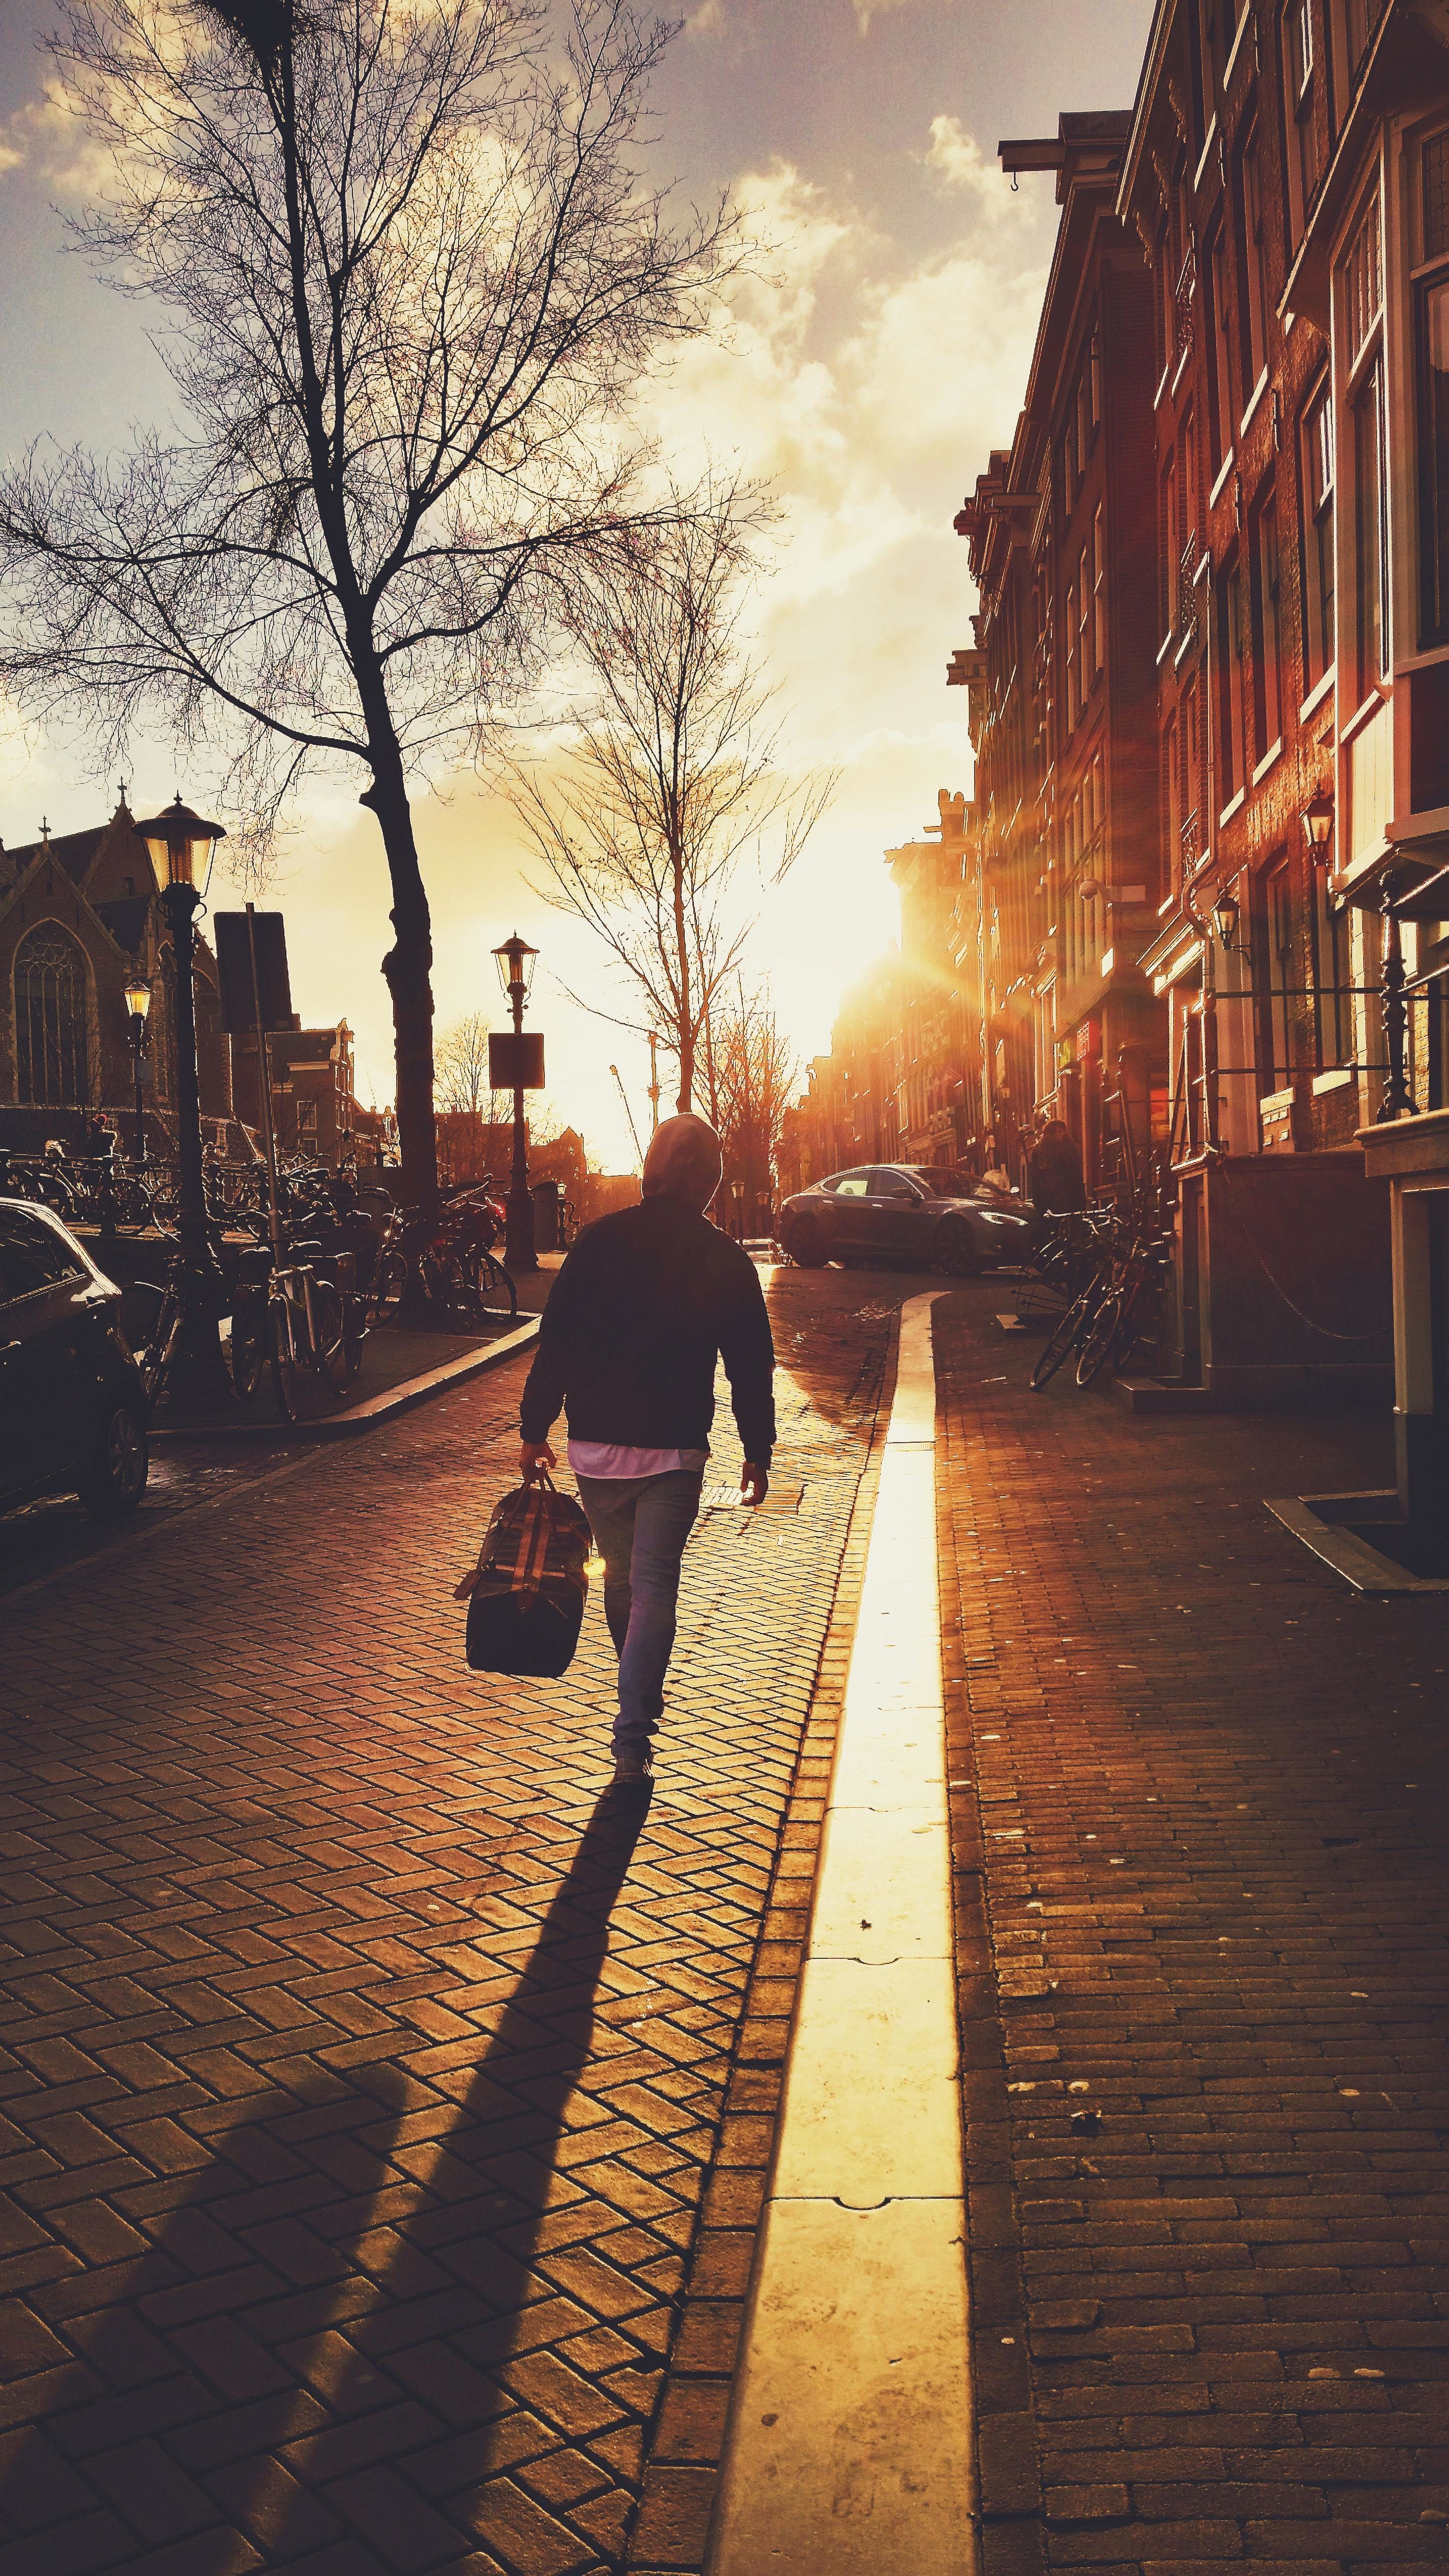 Fall Wallpaper Images Free Free Picture Street People City Sidewalk Walk Sunset